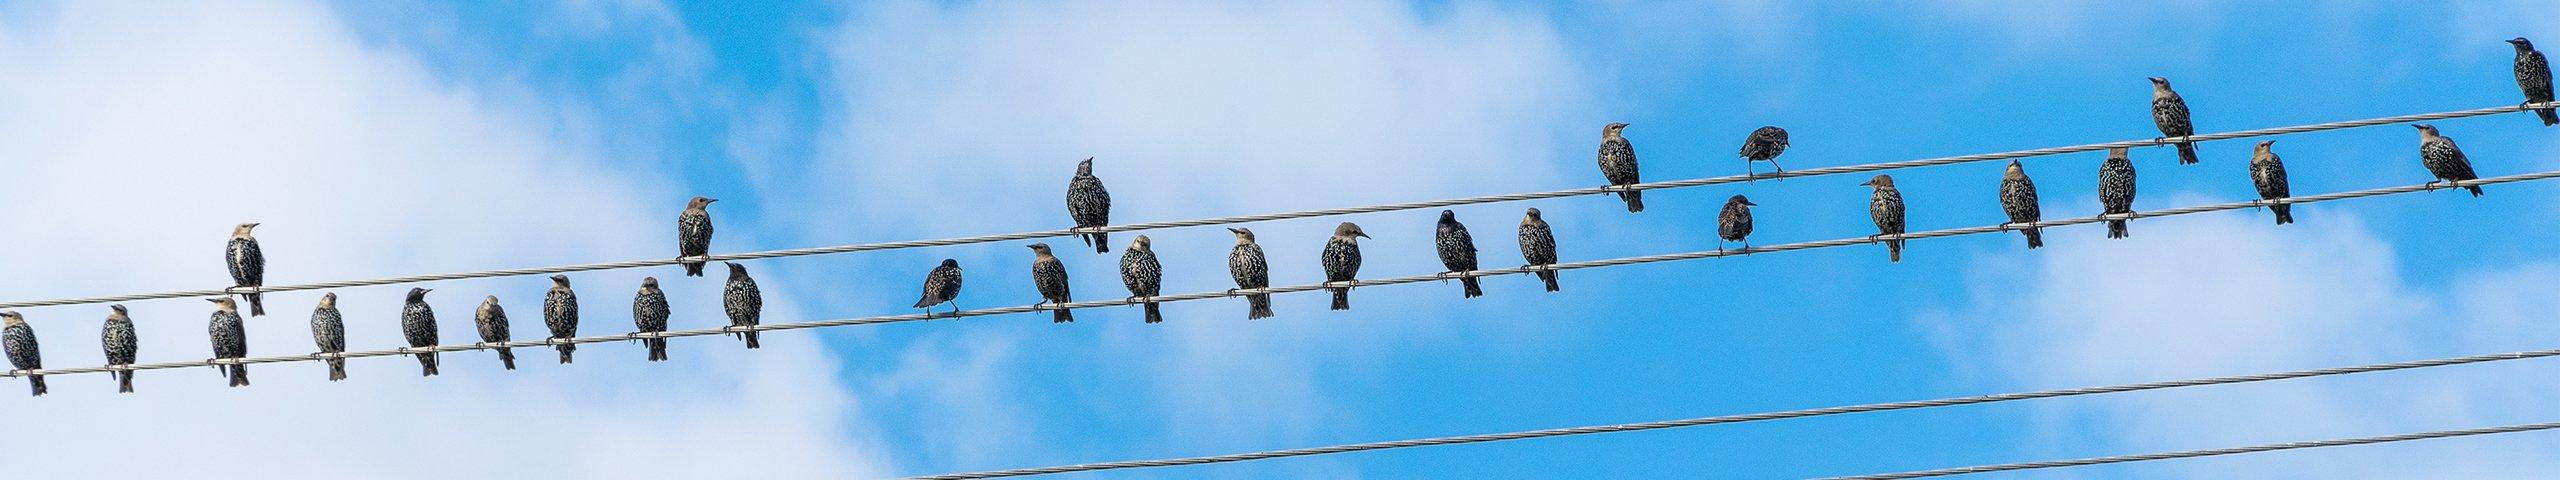 starlings perched on telephone wires